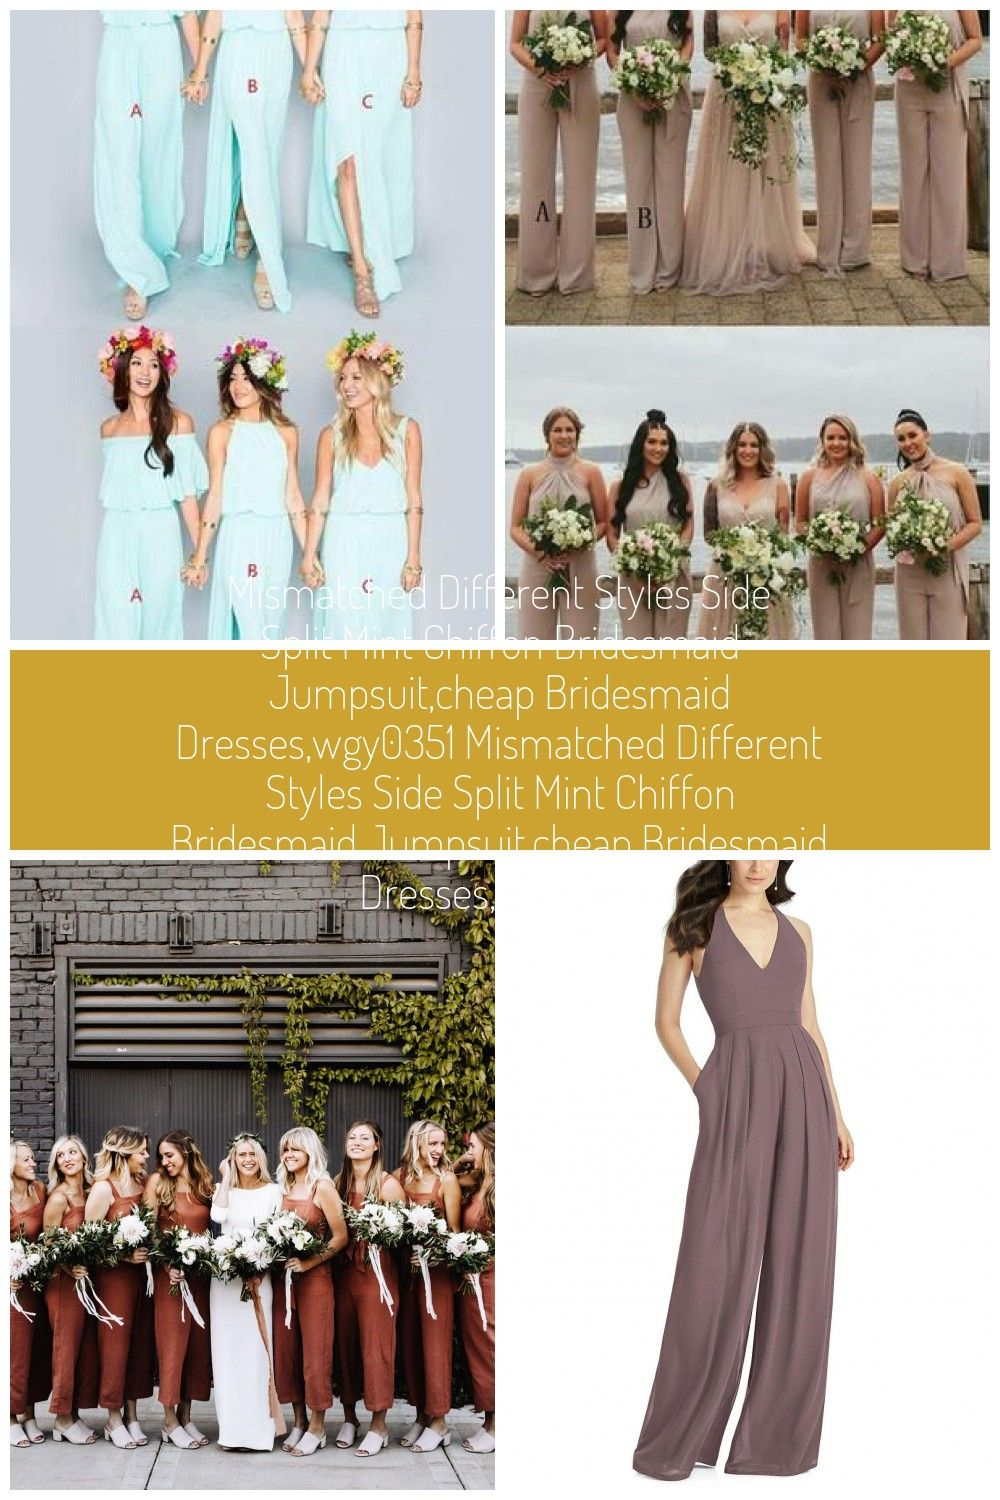 Mismatched Different Styles Side Split Mint Chiffon Bridesmaid Jumpsuit,Cheap Bridesmaid Dresses,WGY0351 #bridesmaid #bridesmaiddresses #longbridesmaiddresses #wedding #2019bridesmaiddresses #simplebridesmaiddresses #bridesmaid jumpsuit Mismatched Different Styles Side Split Mint Chiffon Bridesmaid Jumpsuit,Cheap Bridesmaid Dresses,WGY0351 Mismatched Different Styles Side Split Mint Chiffon Bridesmaid Jumpsuit,Cheap Bridesmaid Dresses,WGY0351 #bridesmaidjumpsuits